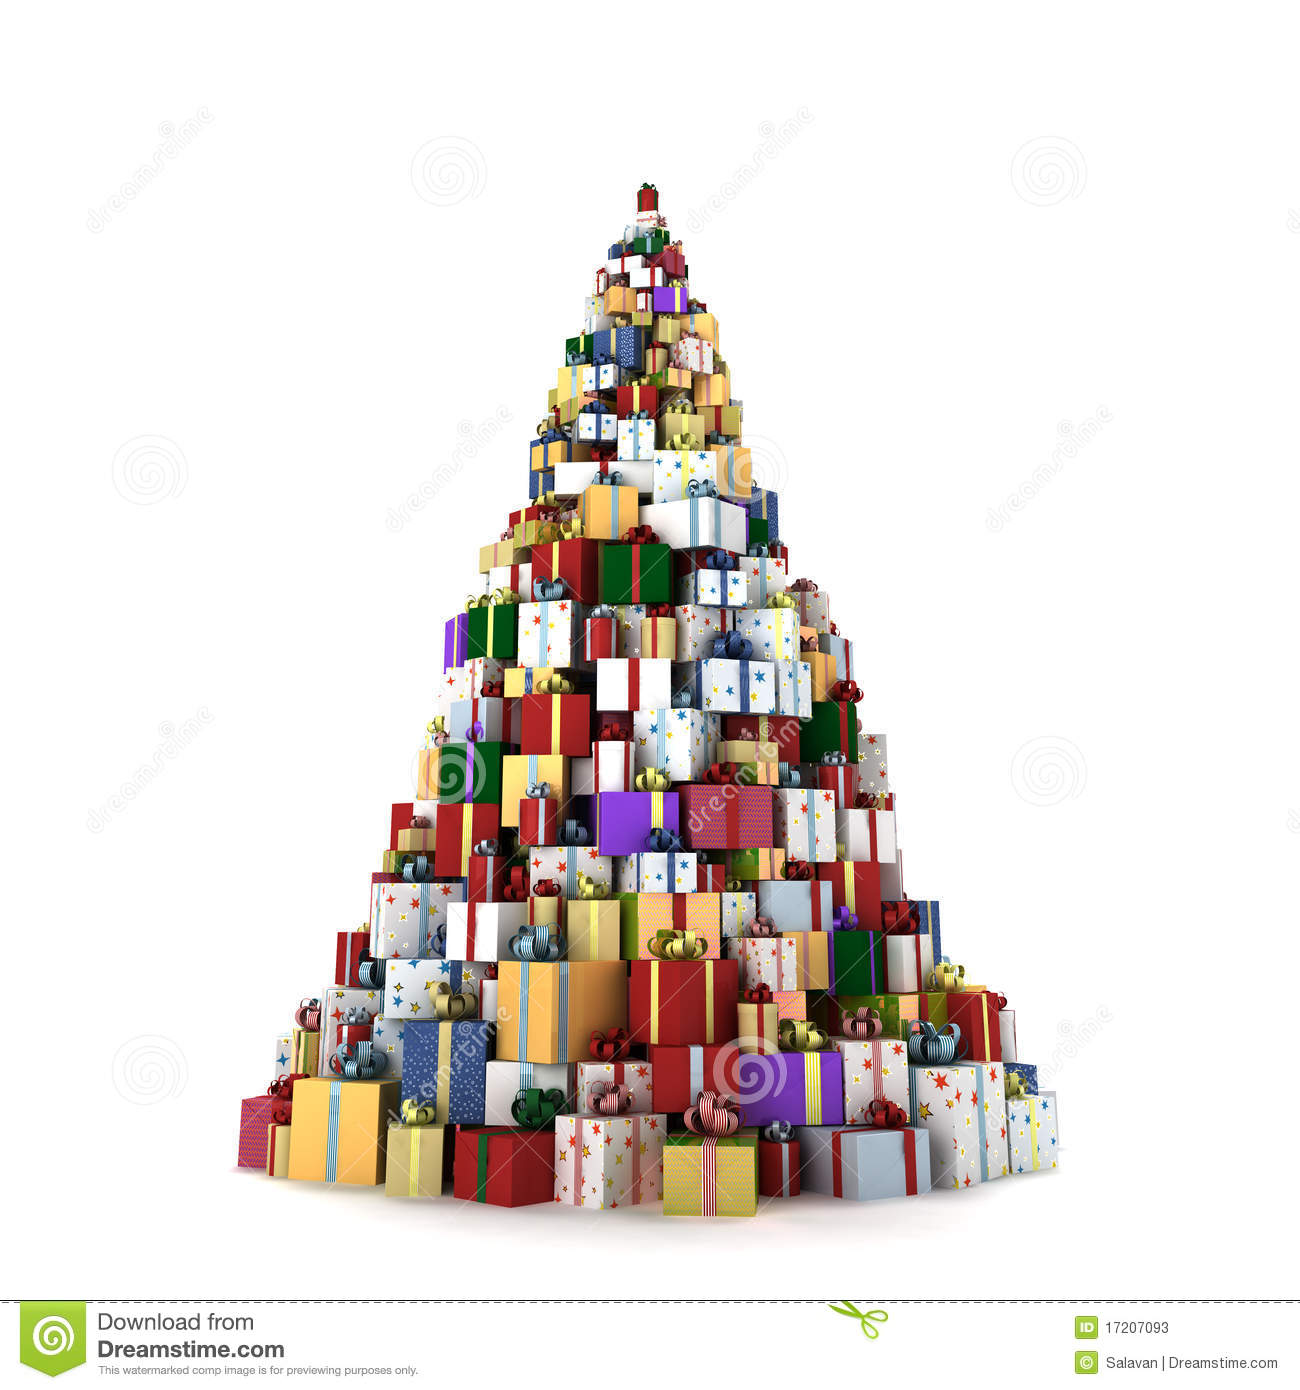 Big mountain of gifts stock photos image 17207093